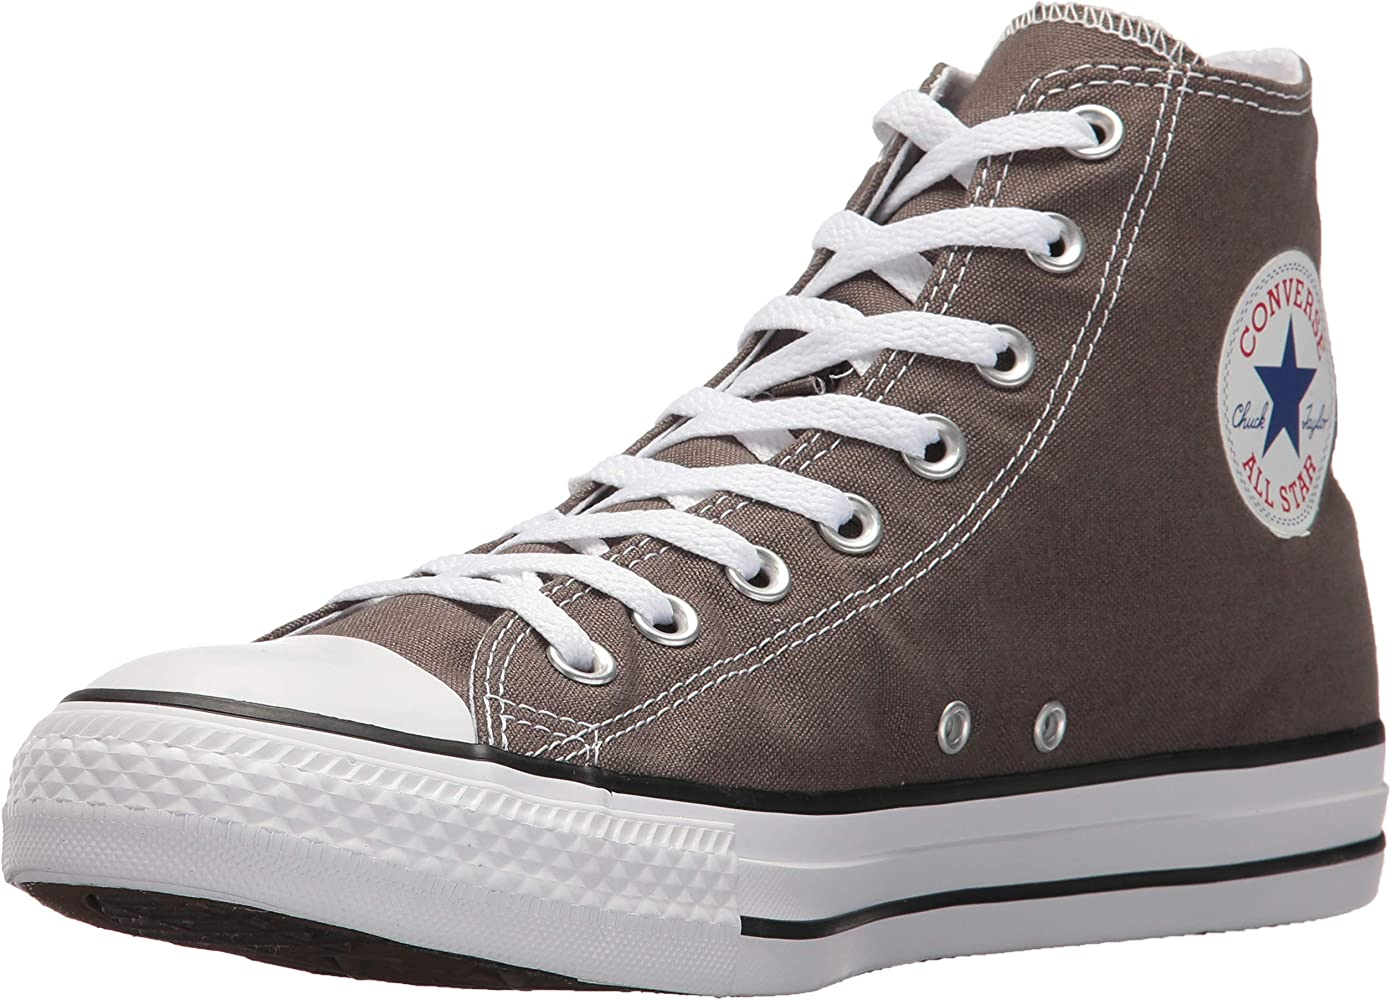 0ae1c30054 CHUCK TAYLOR ALL STAR OX Unisex Charcoal Gray Canvas Sneaker Shoes